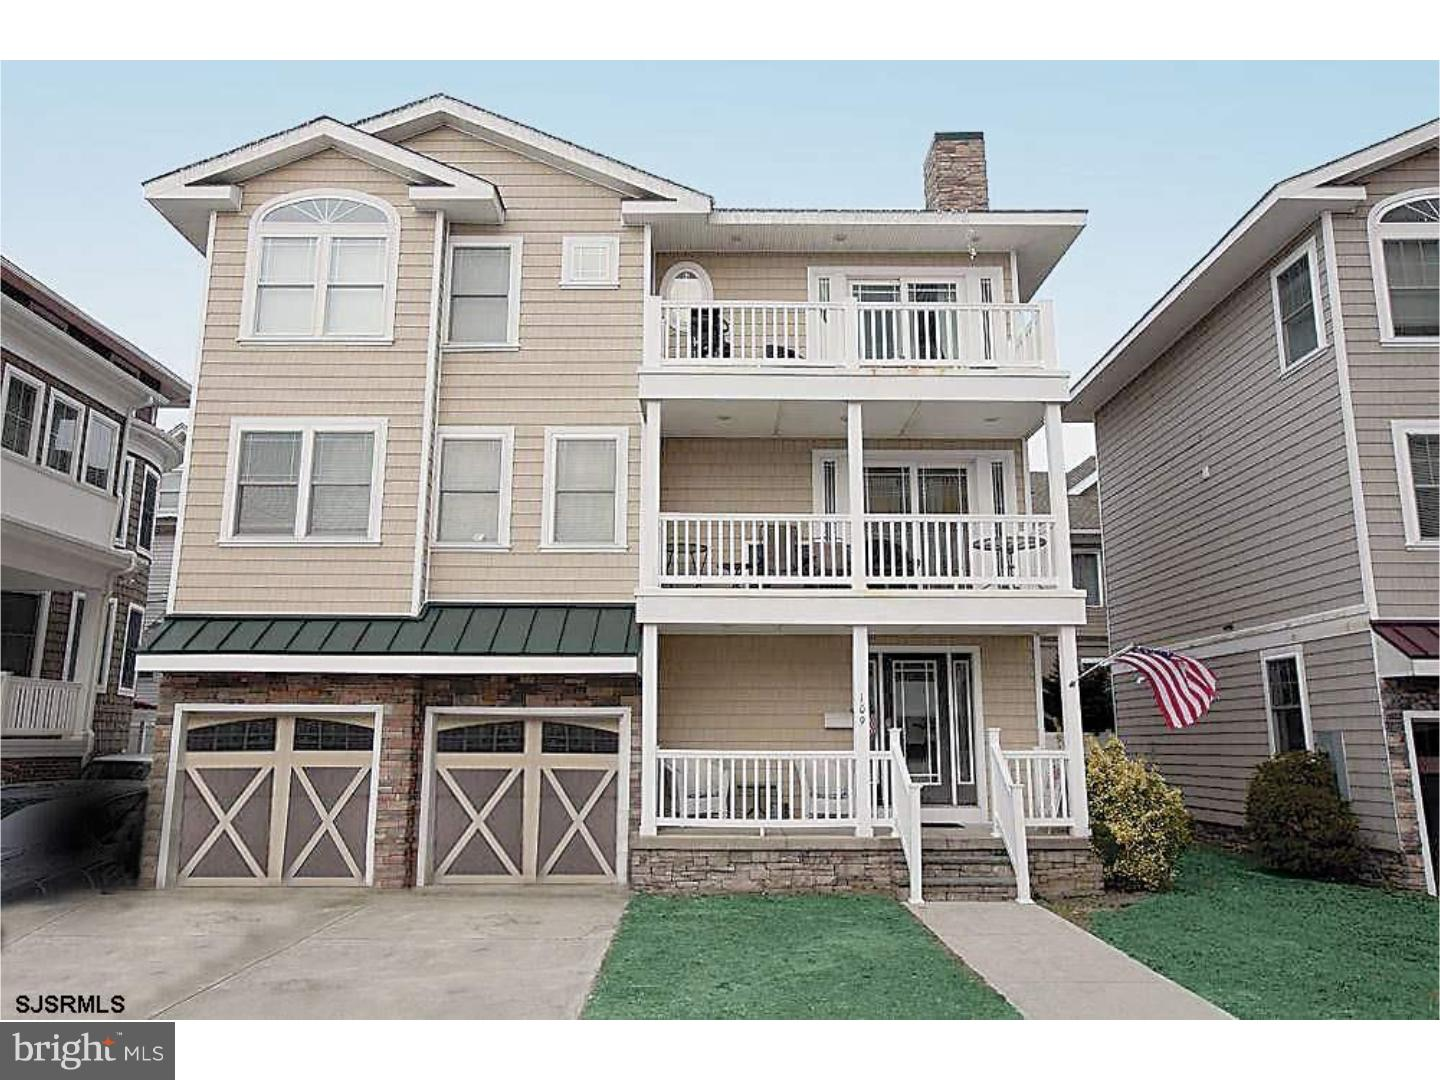 Single Family Home for Sale at 109 S FRANKFORT Avenue Ventnor City, New Jersey 08406 United States